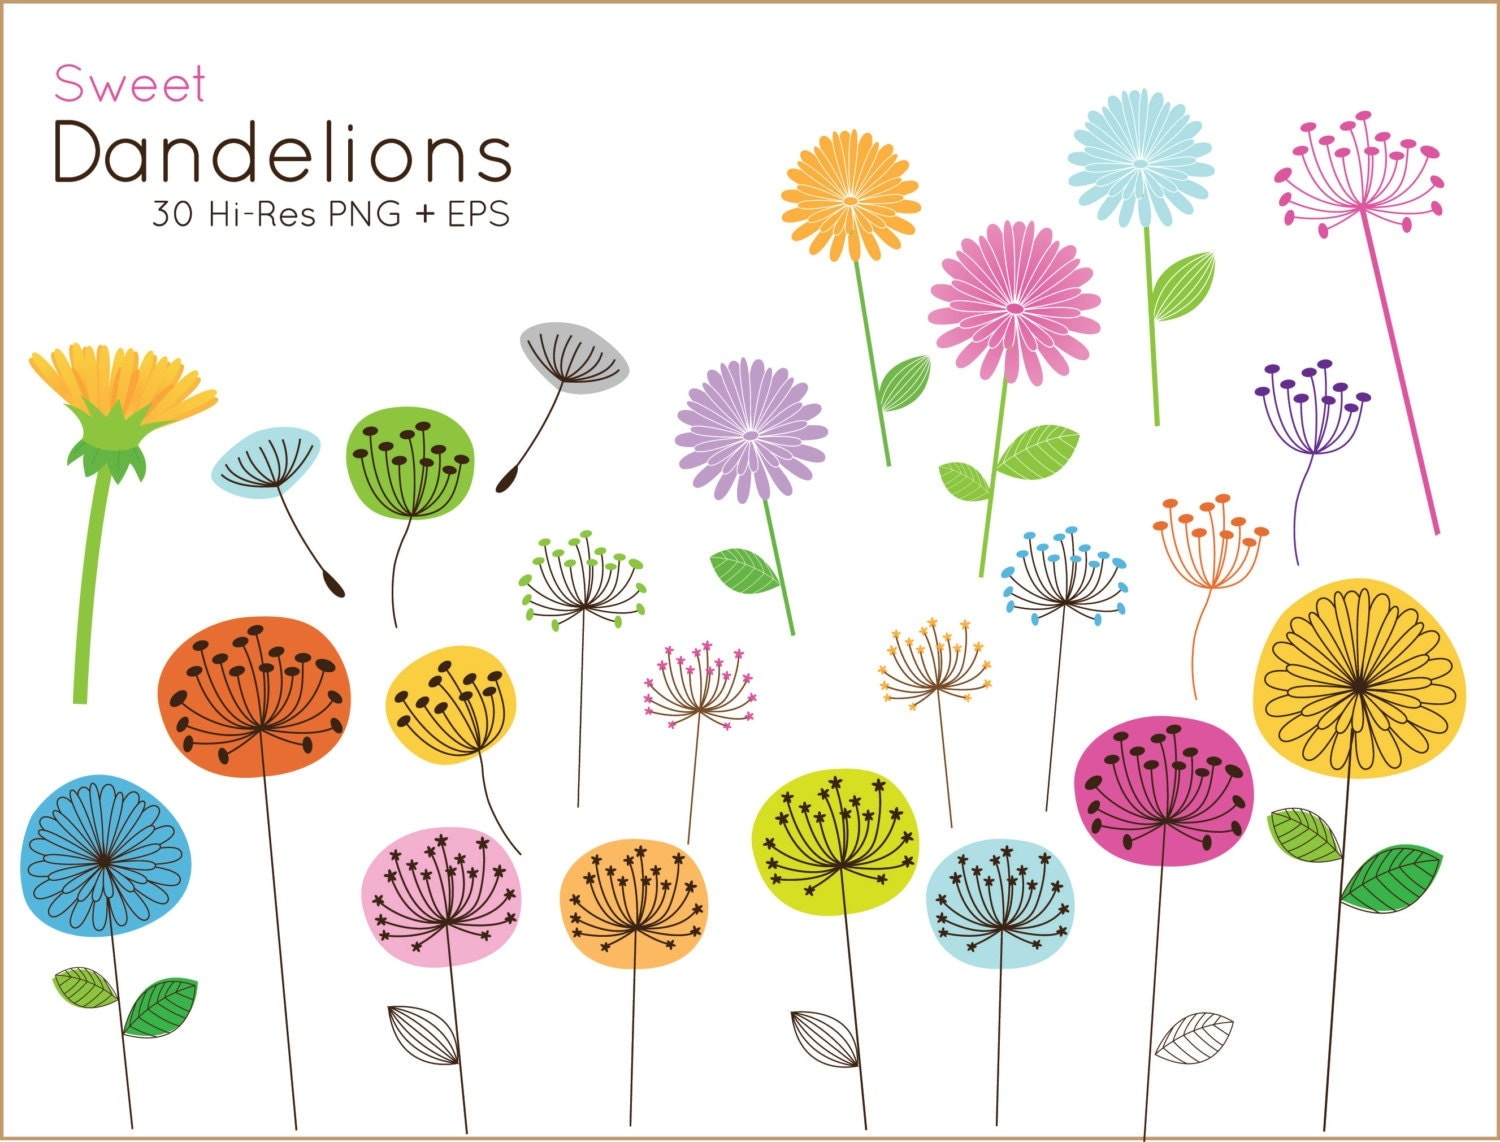 Clip Art Dandelion Clip Art dandelion clip art etsy buy 2 get 1 free sweet for personal and commercial use cute flower clipart vector graphics